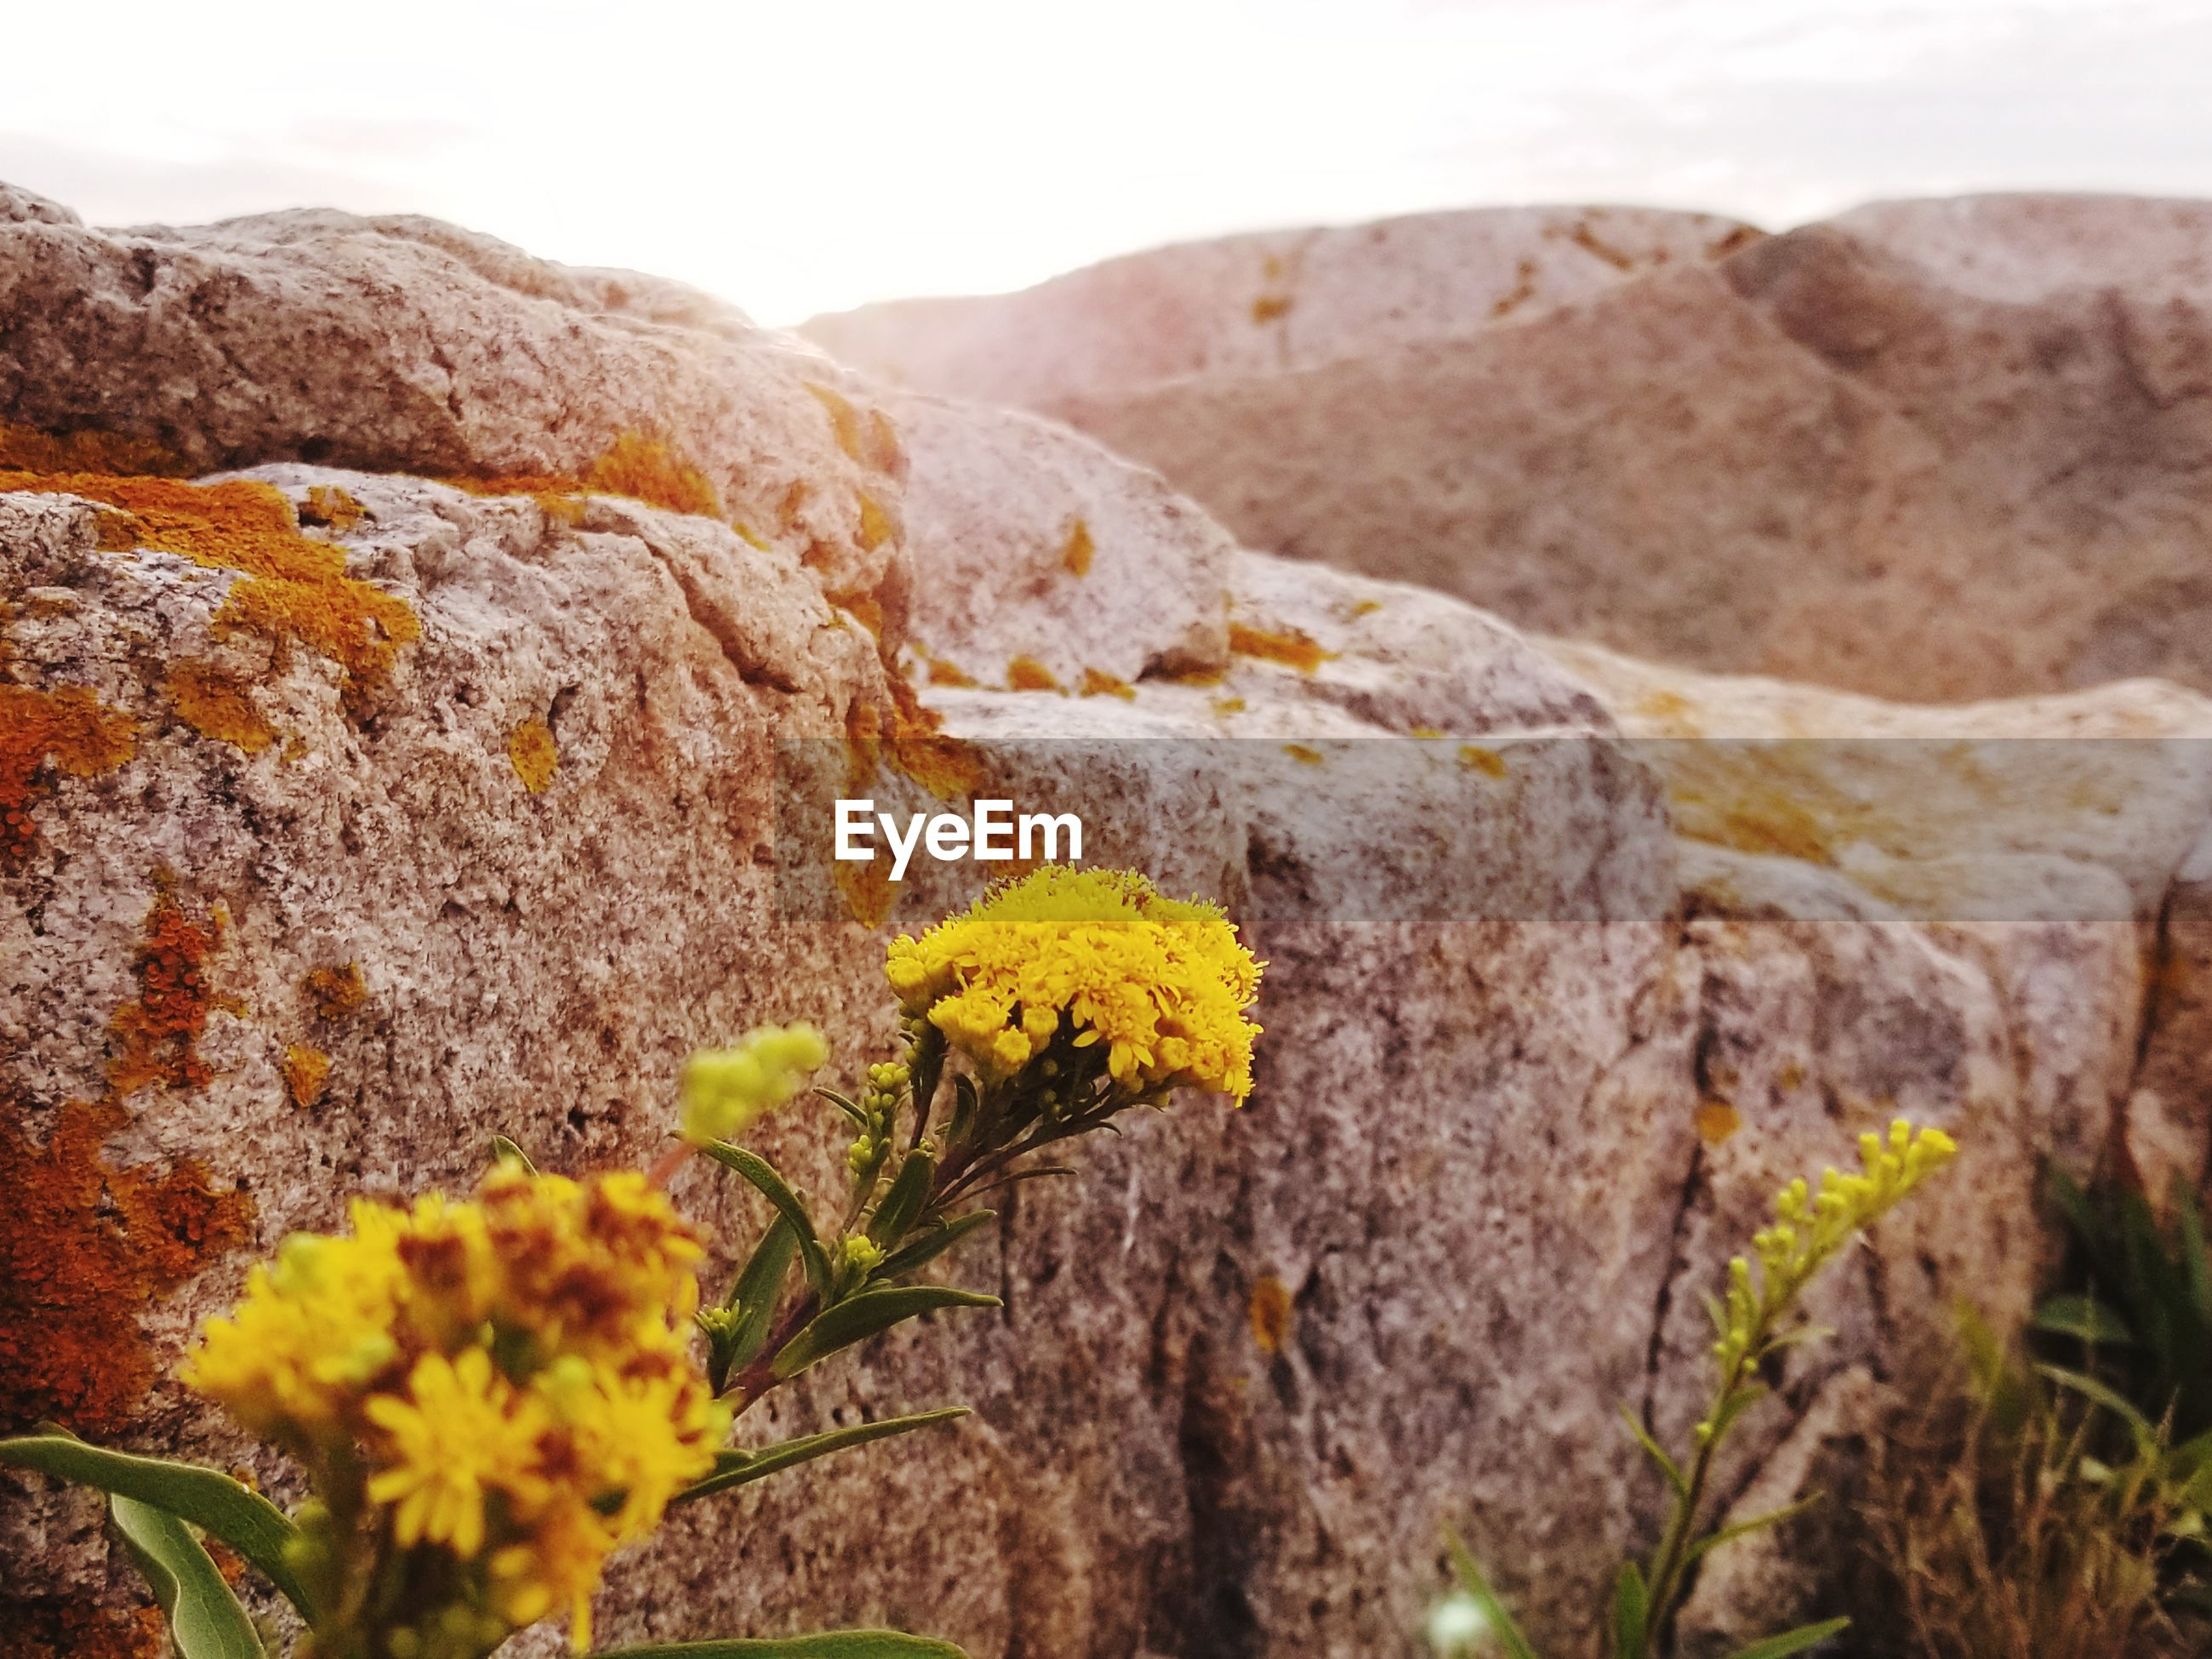 CLOSE-UP OF YELLOW FLOWERING PLANT GROWING ON ROCK